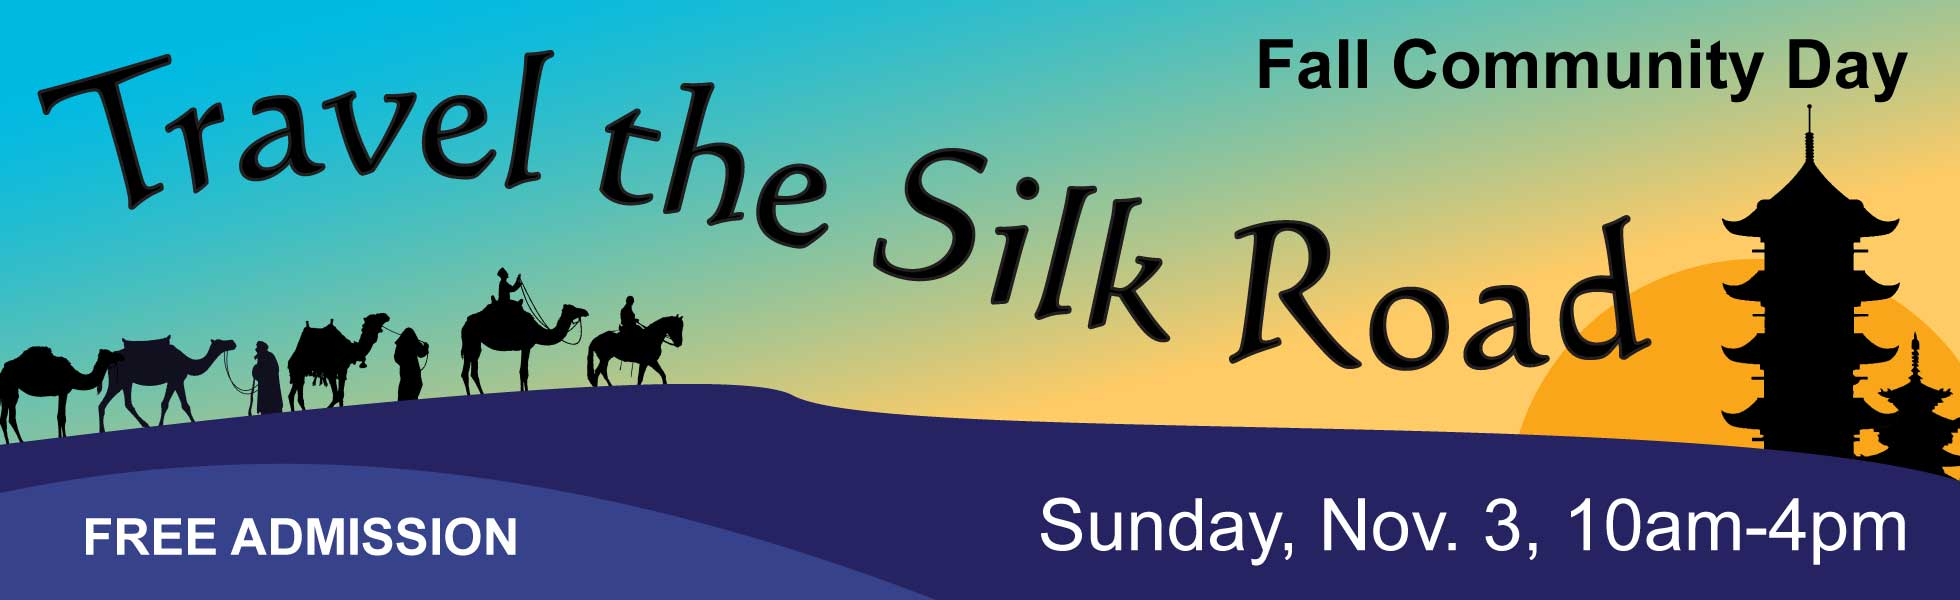 Fall Community Day 2019: Travel the Silk Road